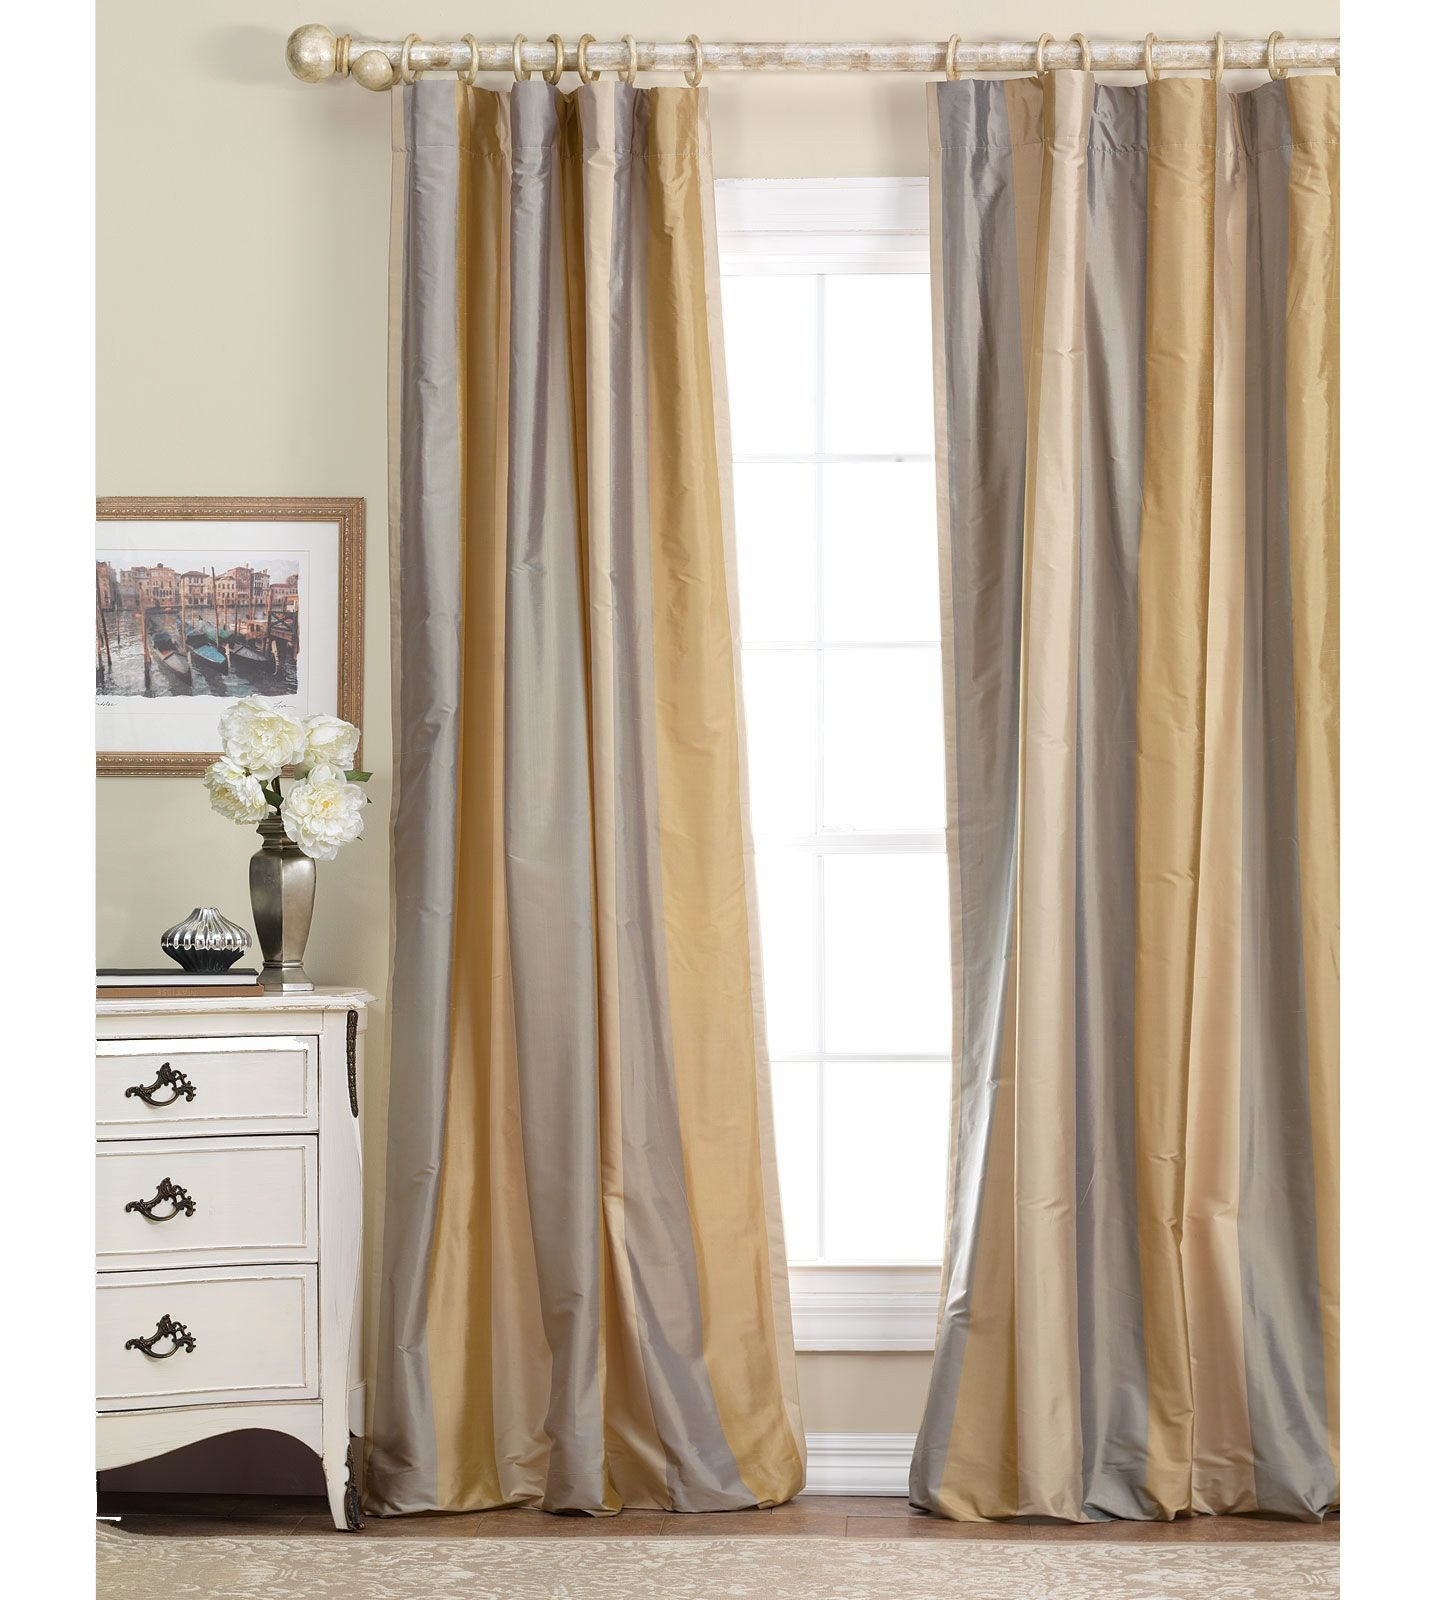 Pretty Curtains for Bedroom Elegant Gold and Gray Silk Curtains